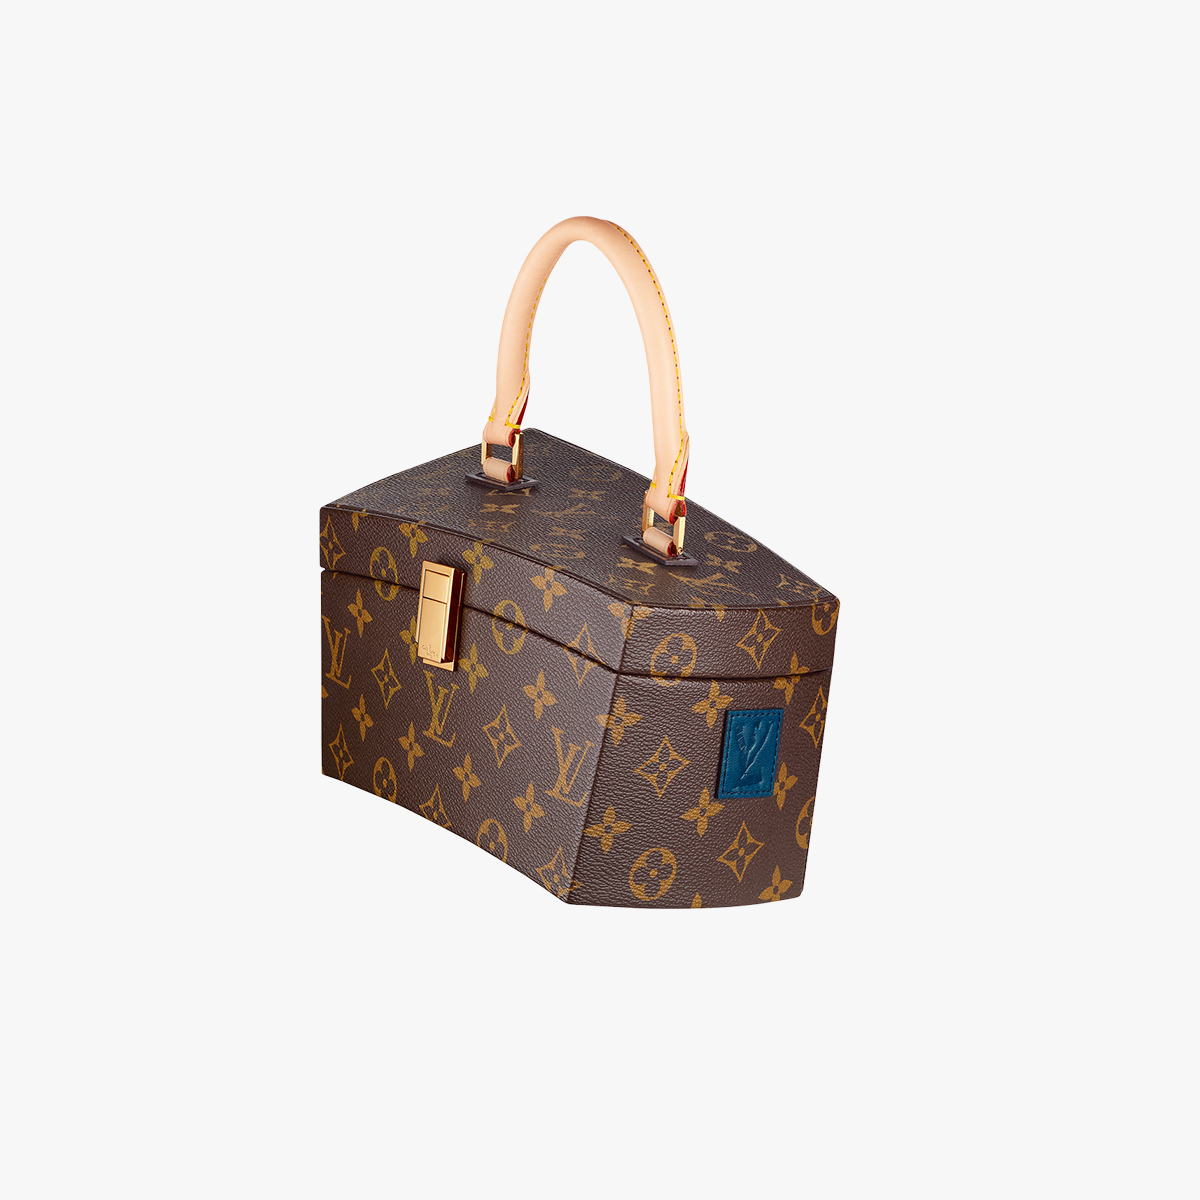 Frank Gehry & LV